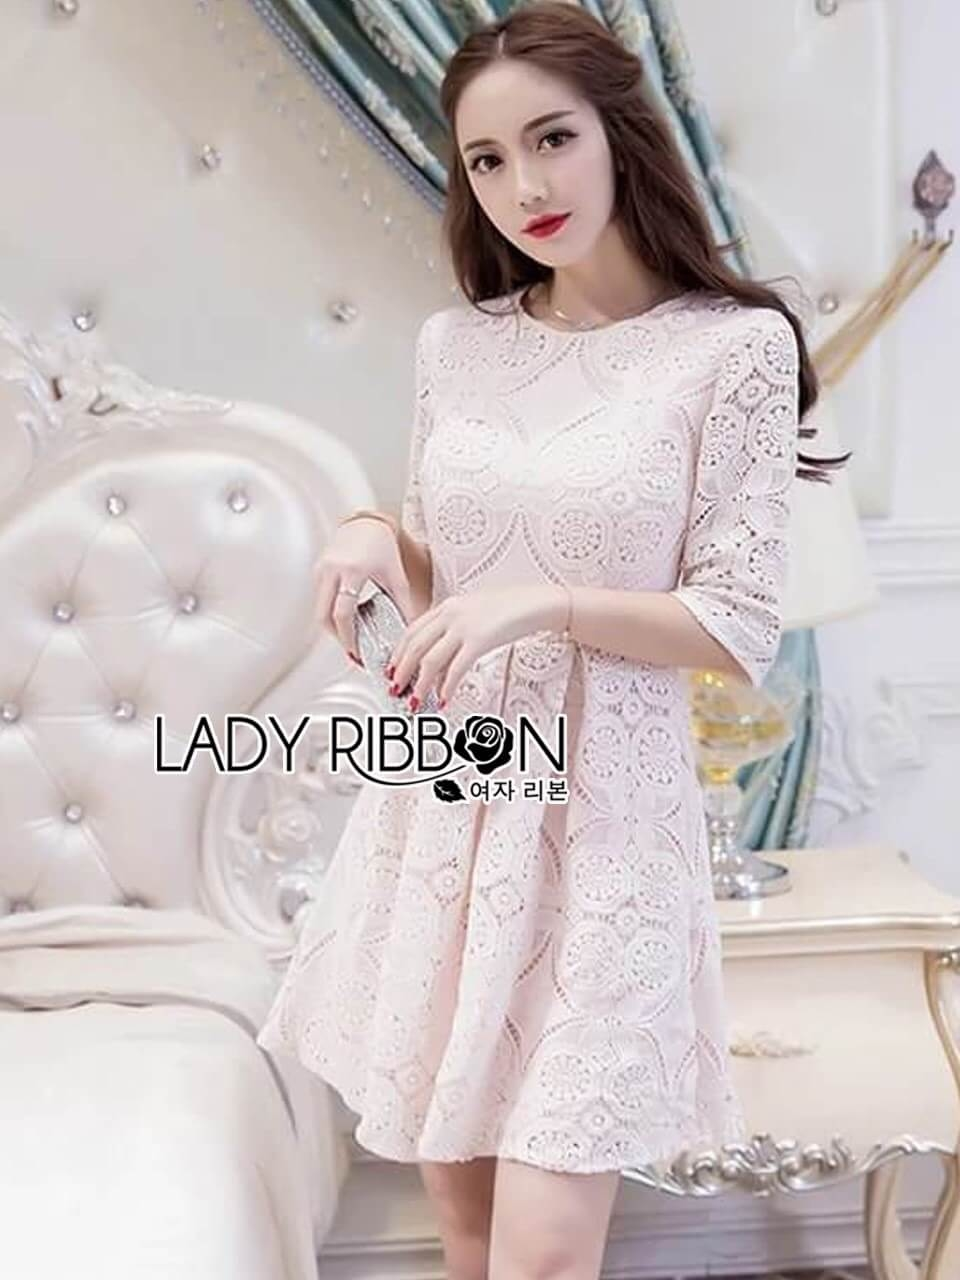 &#x1F380 Lady Ribbon's Made &#x1F380 Lady Abigail Sweet Feminine Laser-Cut and Embroidered Cotton Dress